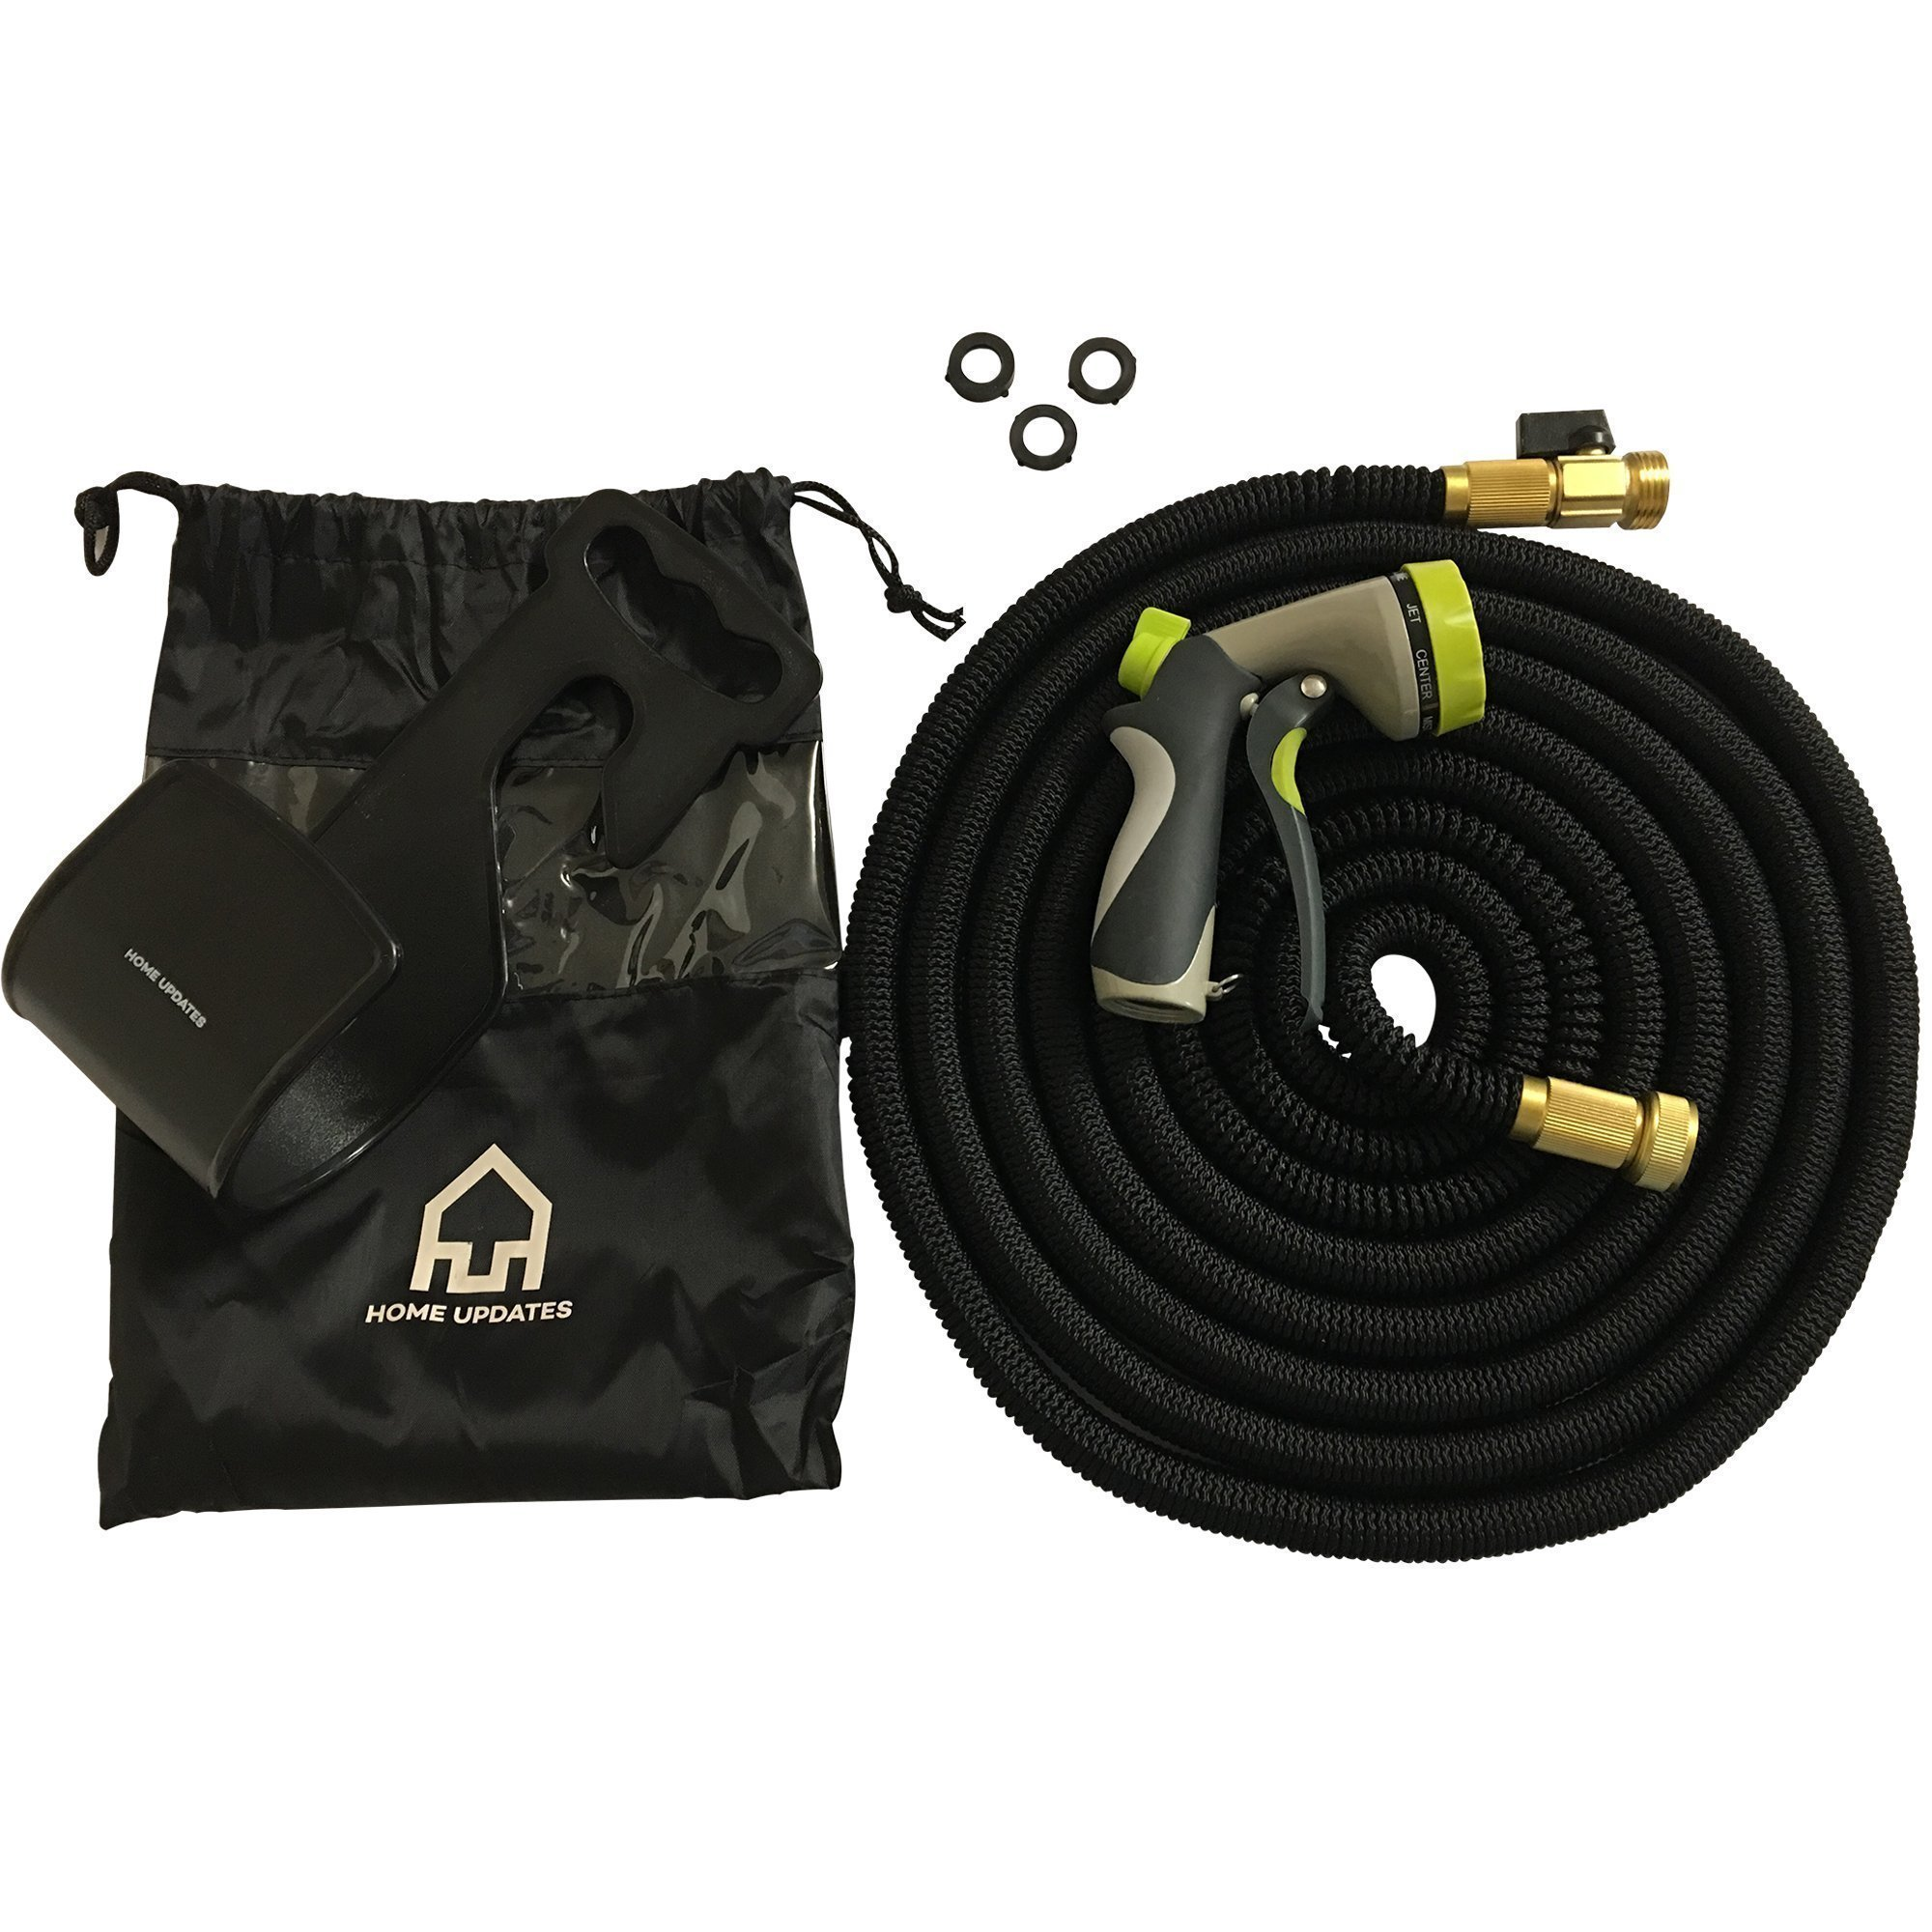 Home Updates Premium Expandable Garden Hose By Lightweight & Heavy Duty Flexible Water Hose | Kink Free & Space Saving Expanding Hose | 8-Pattern Powerful Sprayer & Storage Bag | 50ft